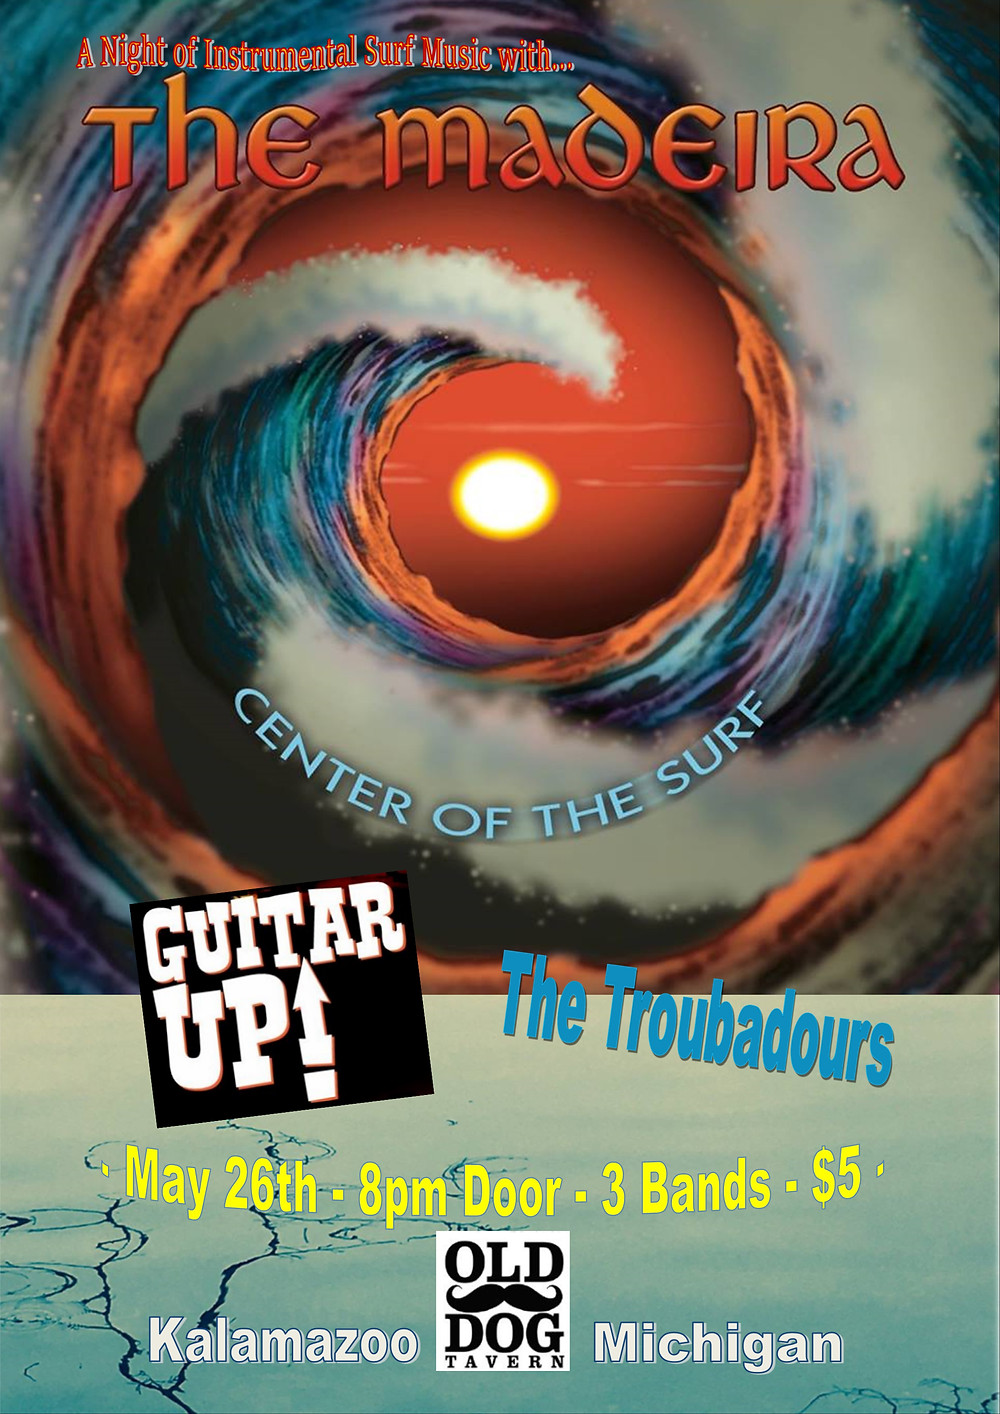 Guitar UP! will be opening for the Madeira, a renowned modern surf band from Indianapolis, on May 26th at Old Dog Tavern.  Kalamazoo, MI